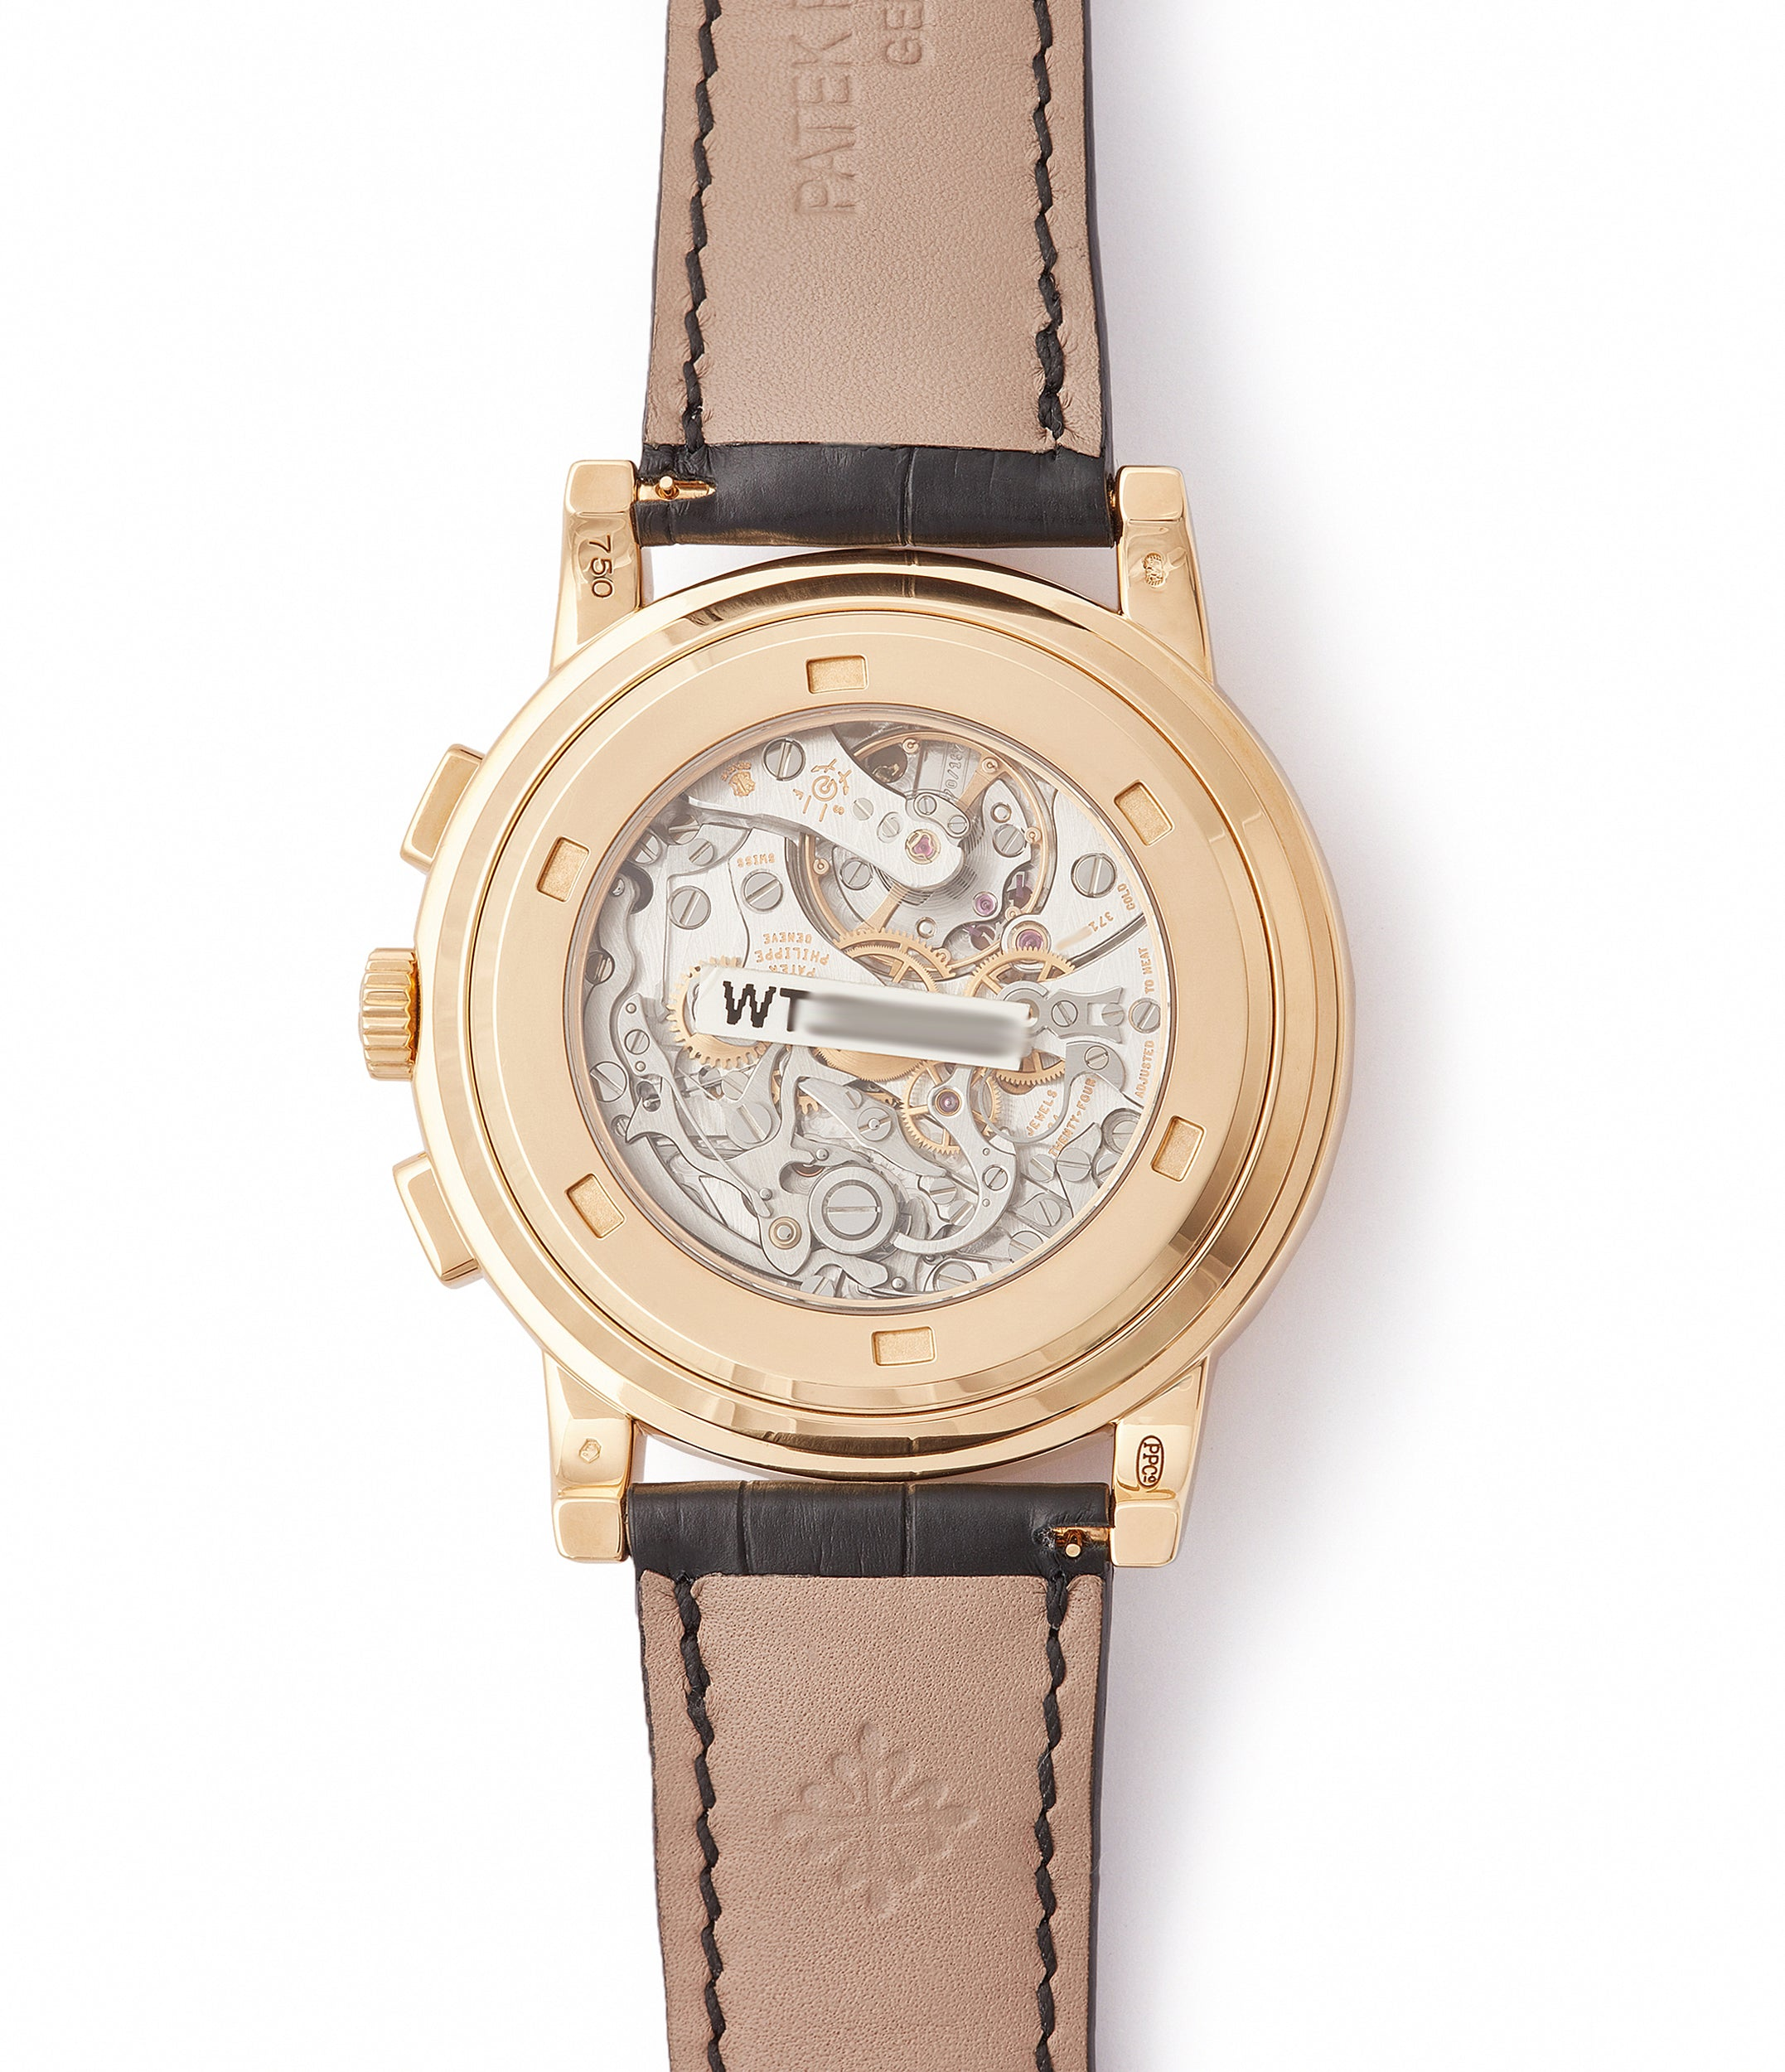 manual-winding Patek Philippe 5070J-012 Saatchi Edition Chronograph brown dial yellow gold watch for sale online at A Collected Man London UK specialist of rare watches